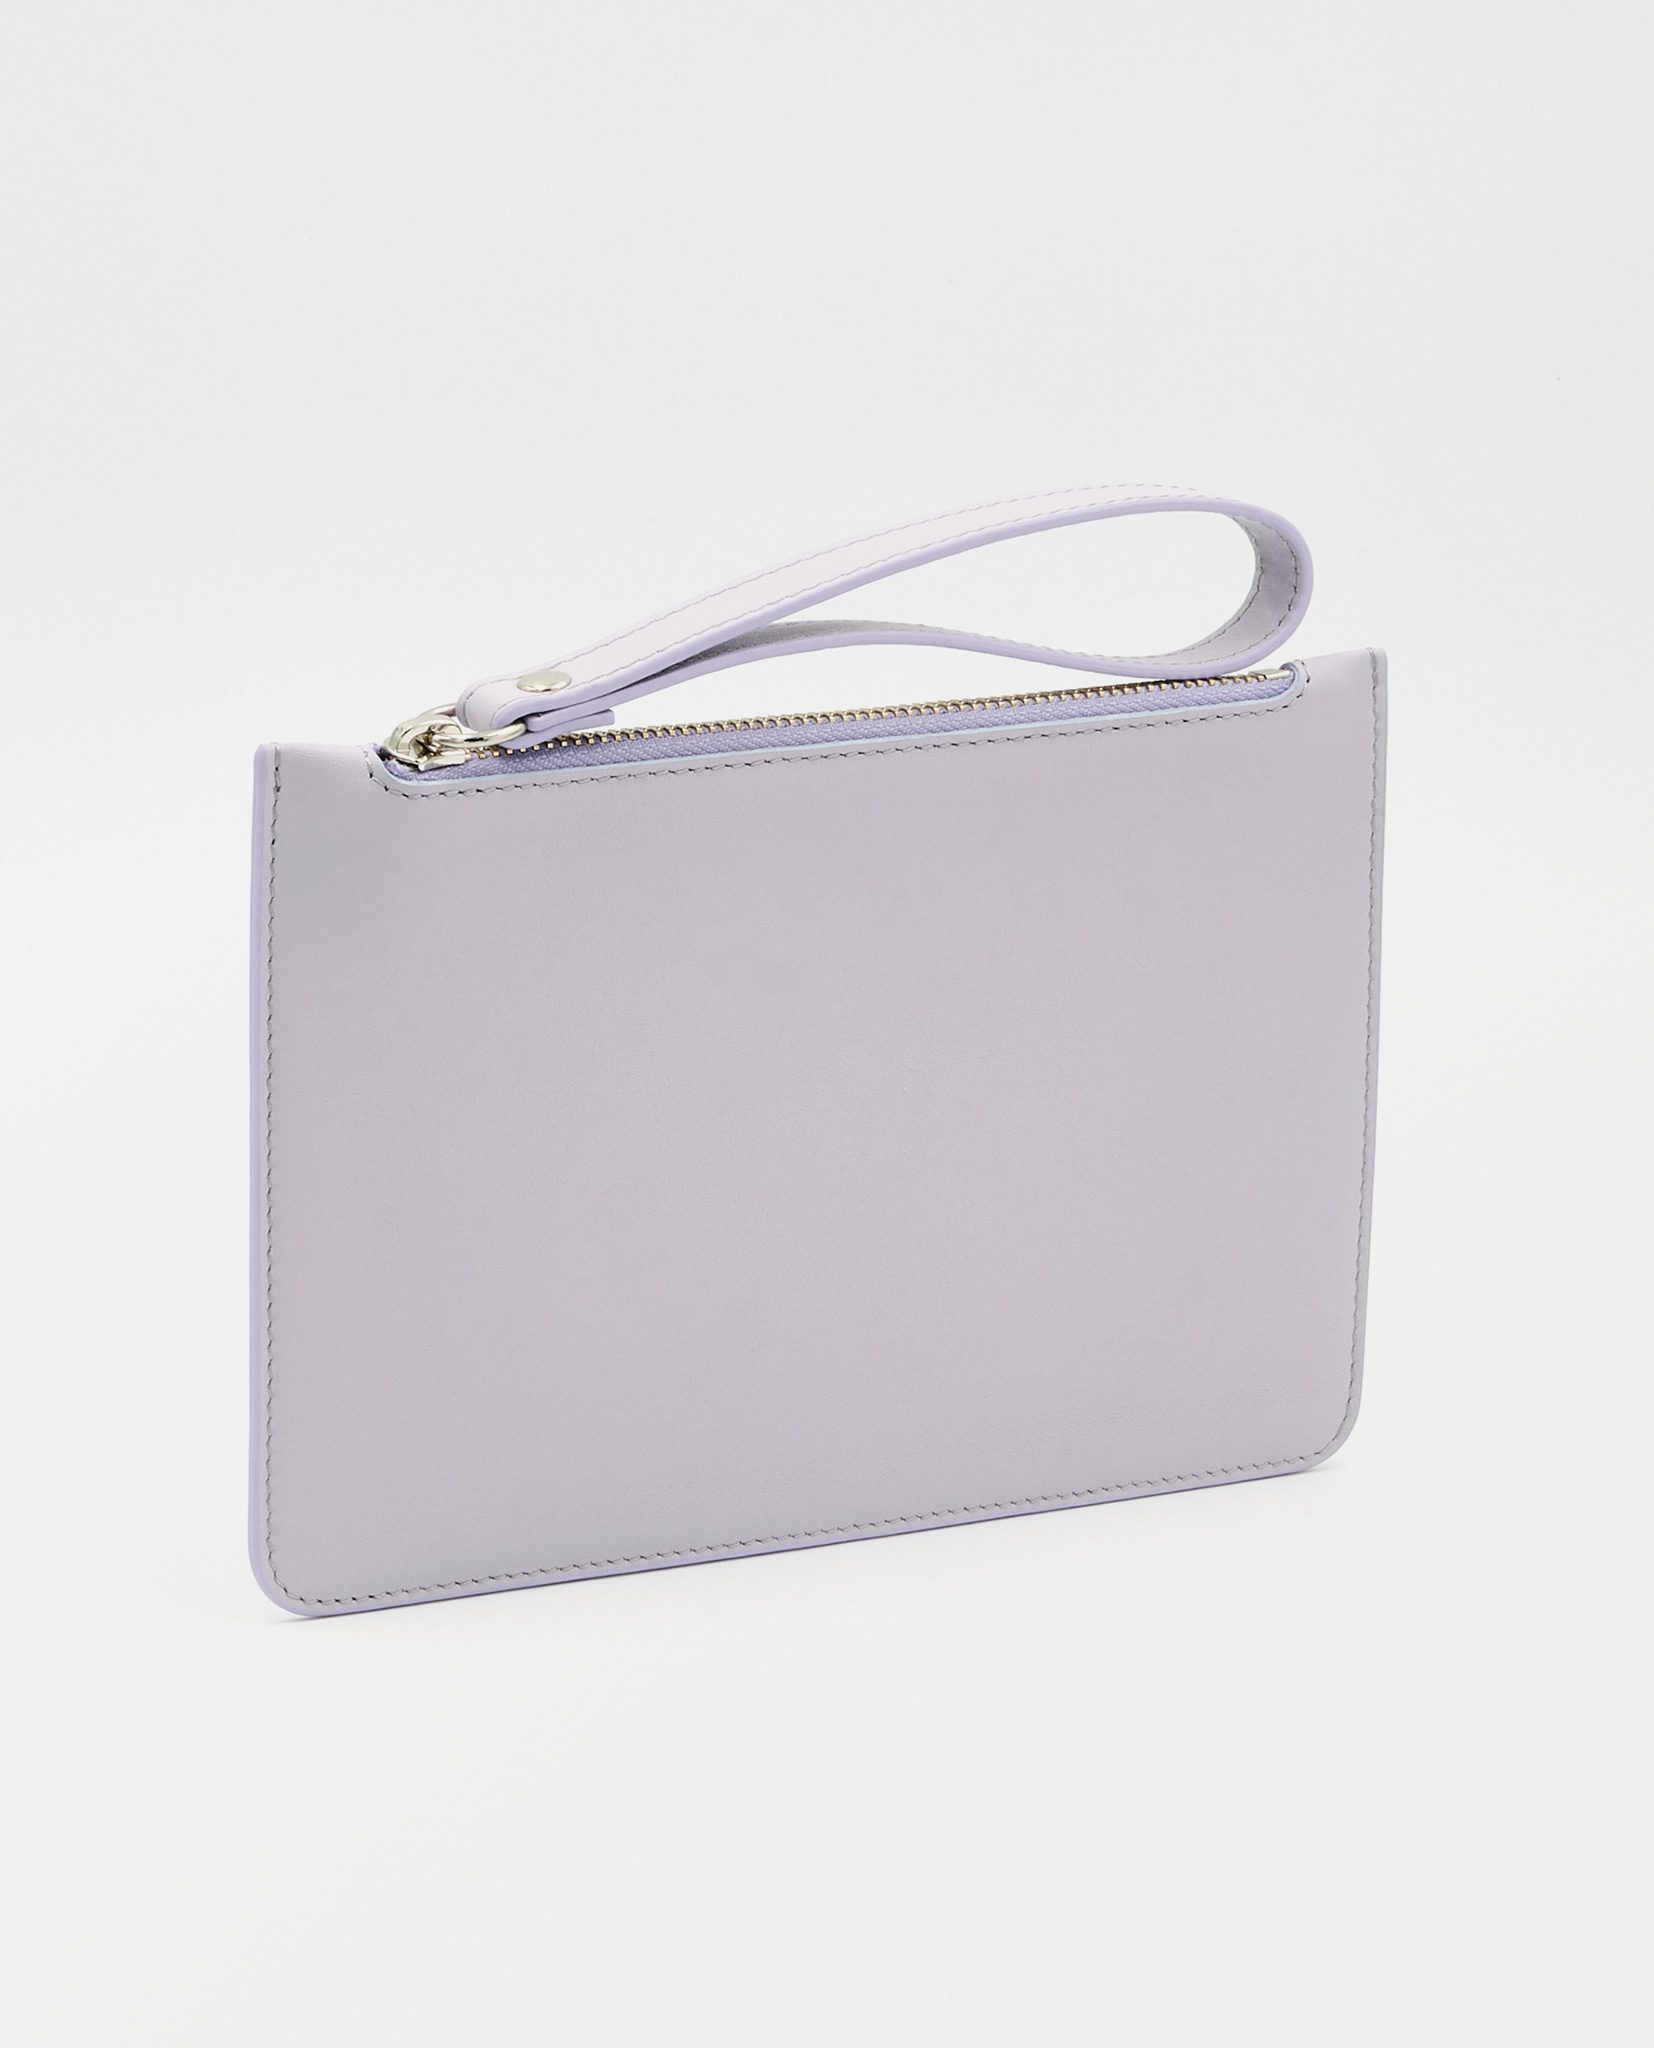 Soofre Small Smooth Leather Pouch Lilac